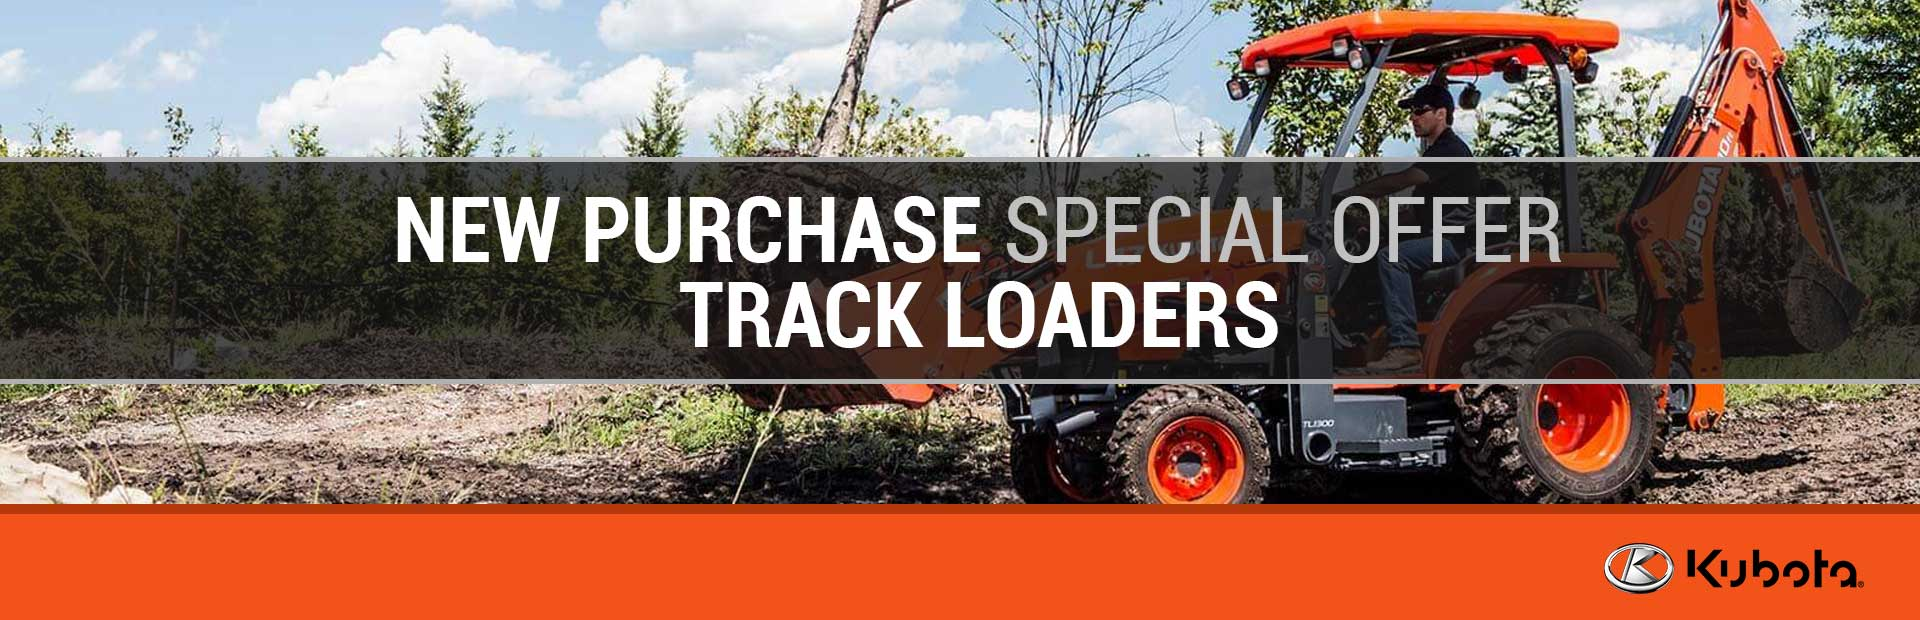 Kubota: New Purchase Special Offer - Track Loaders